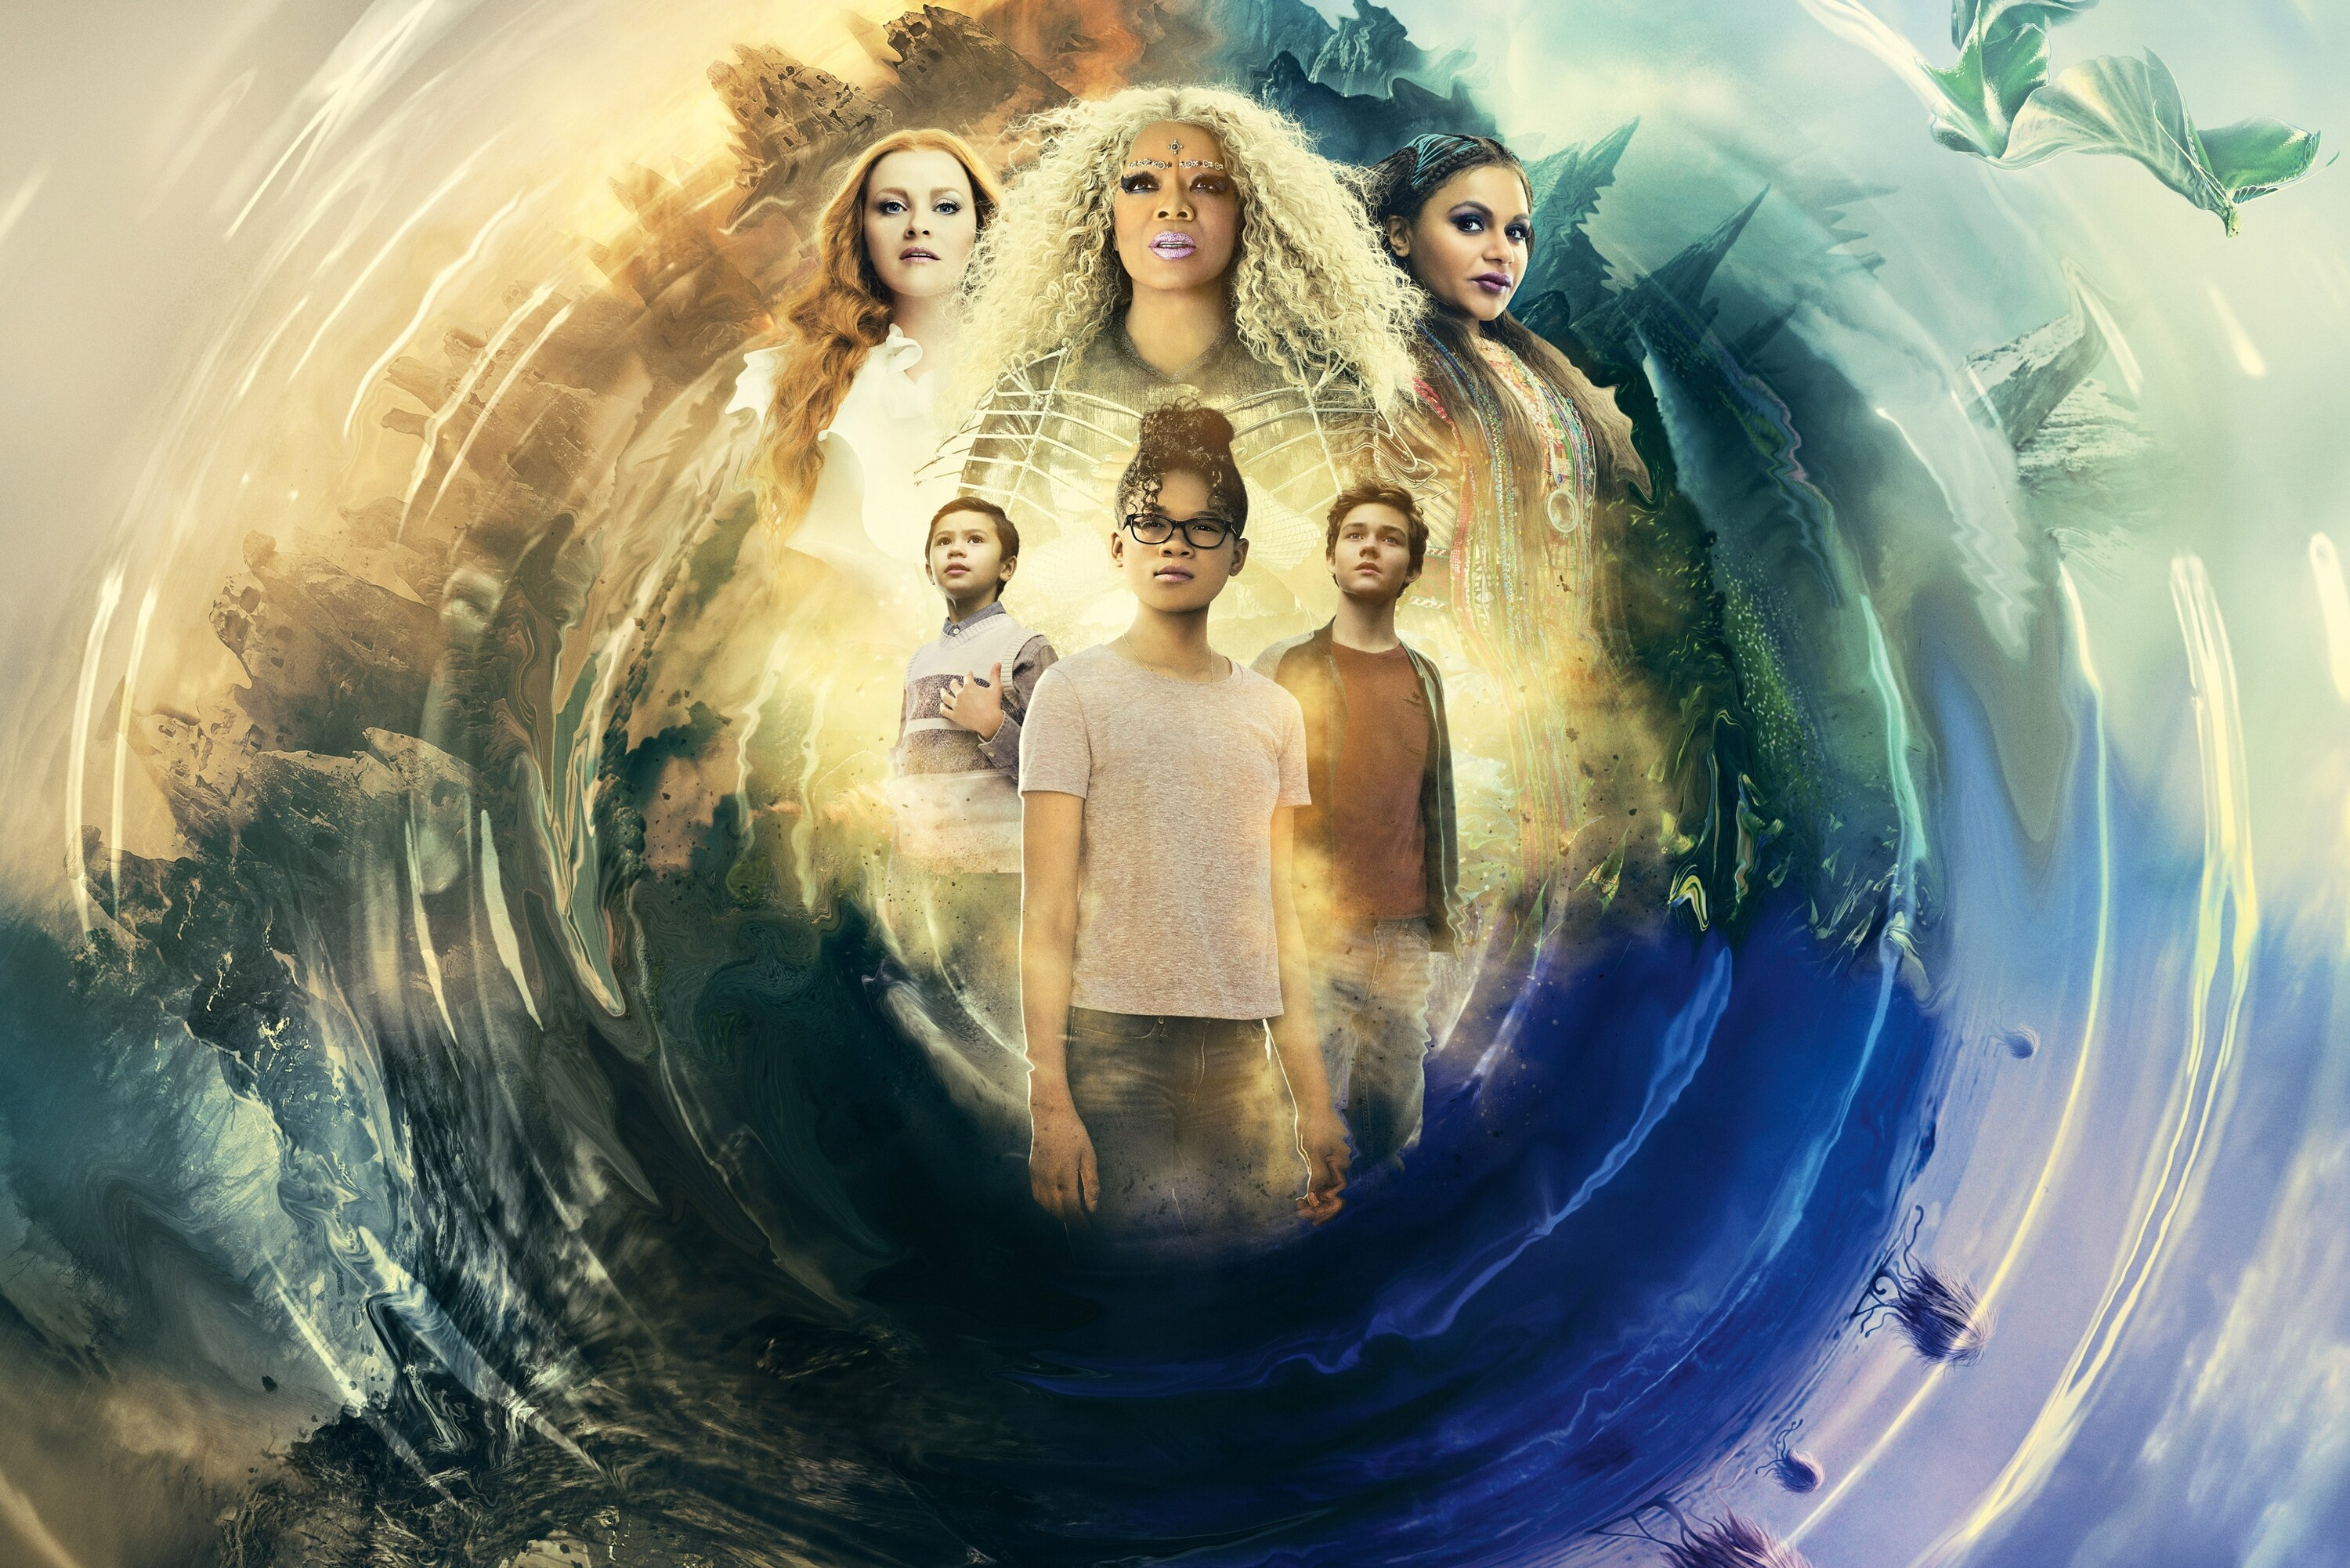 3000x2002 A Wrinkle In Time Movie 2018 5k Poster 3000x2002